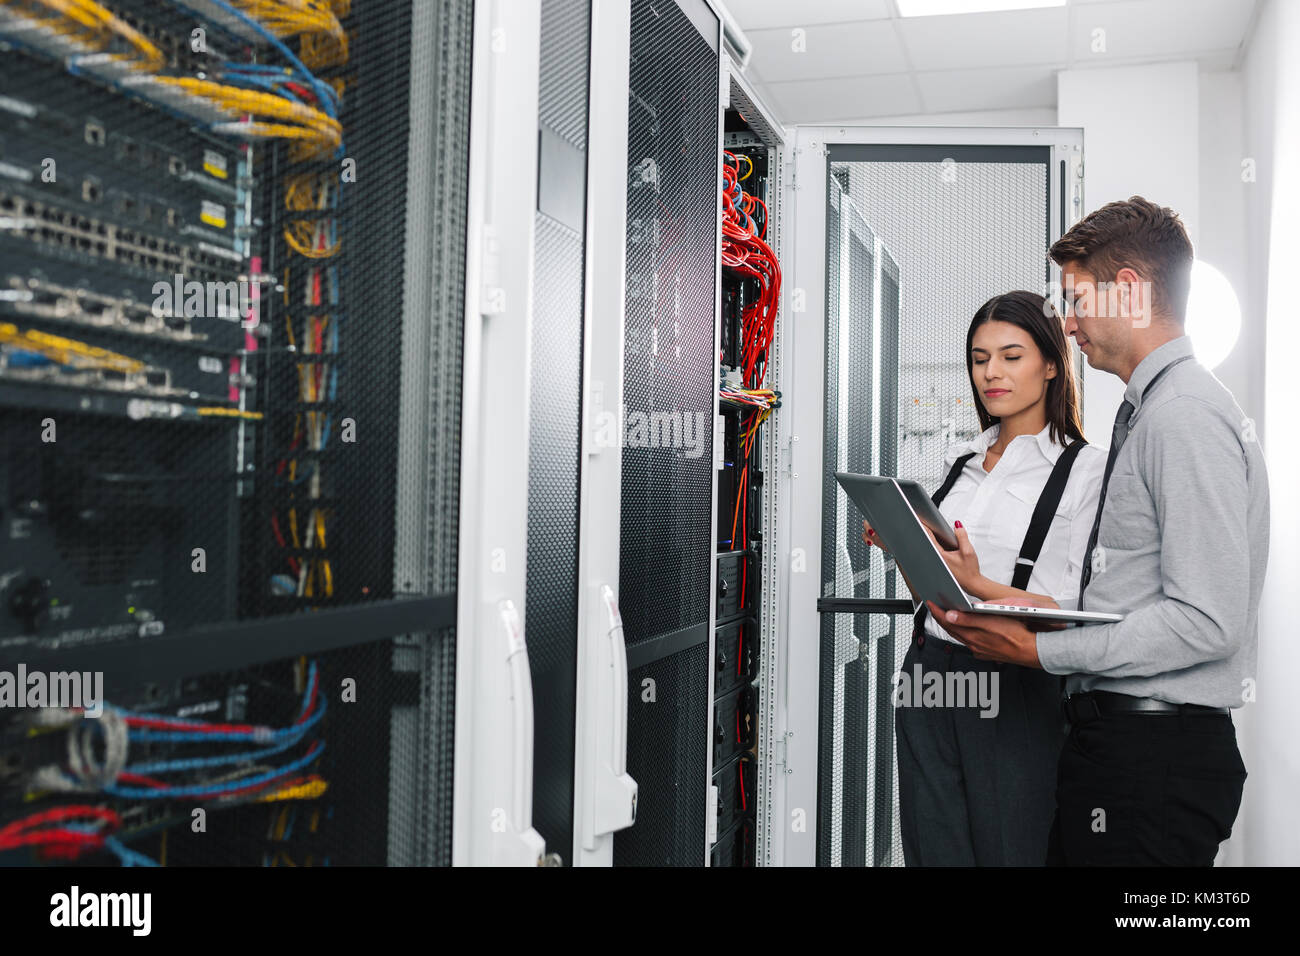 Team of technicians working together on servers at the data centre Stock Photo